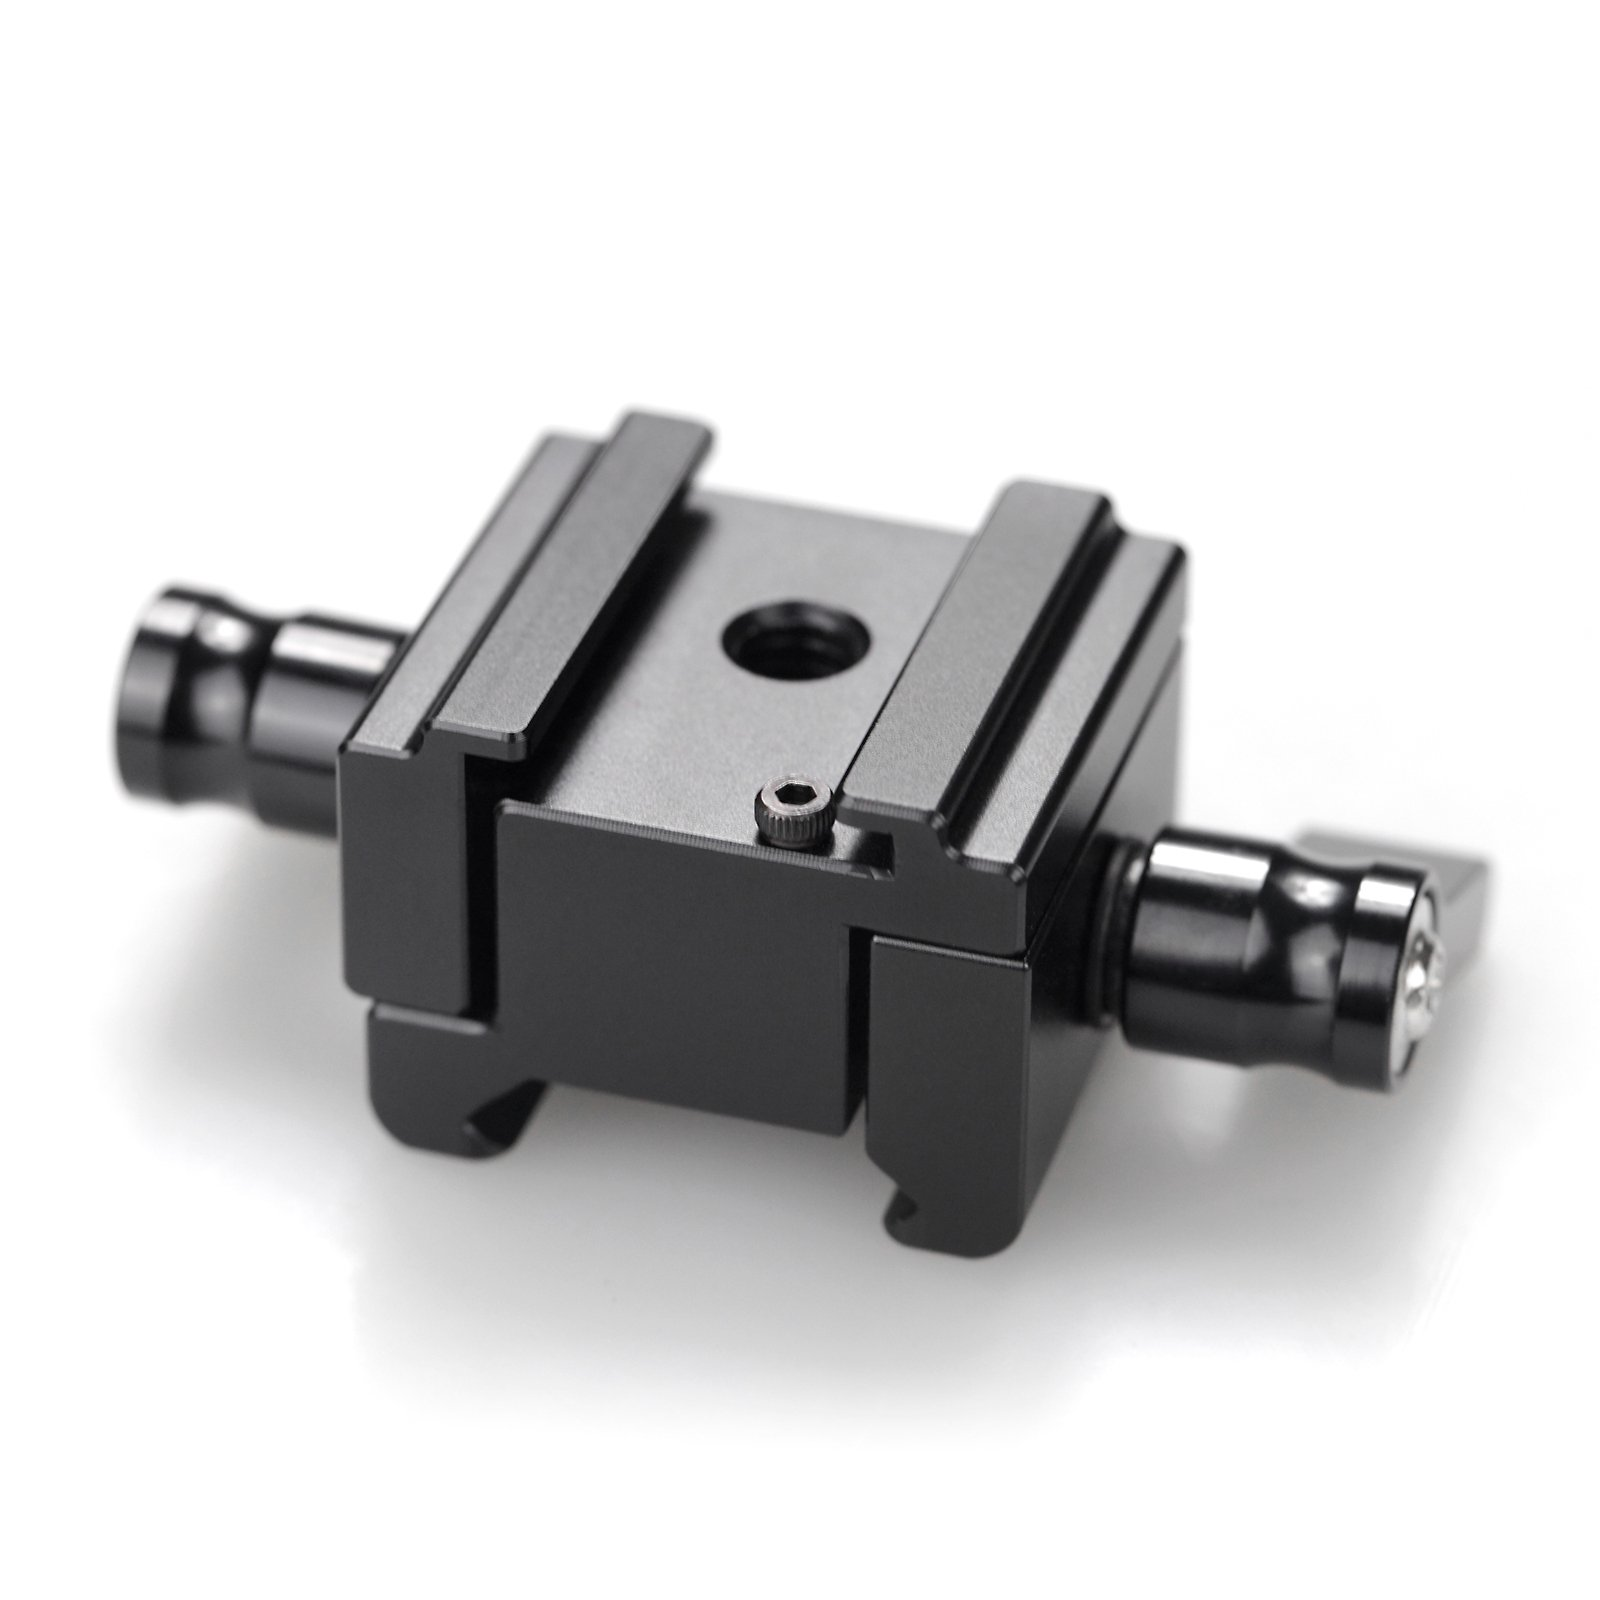 SMALLRIG Hot Shoe Mount with NATO Clamp Width Adjustable for Canon C100/C100 MarkII/C300/C500-1652